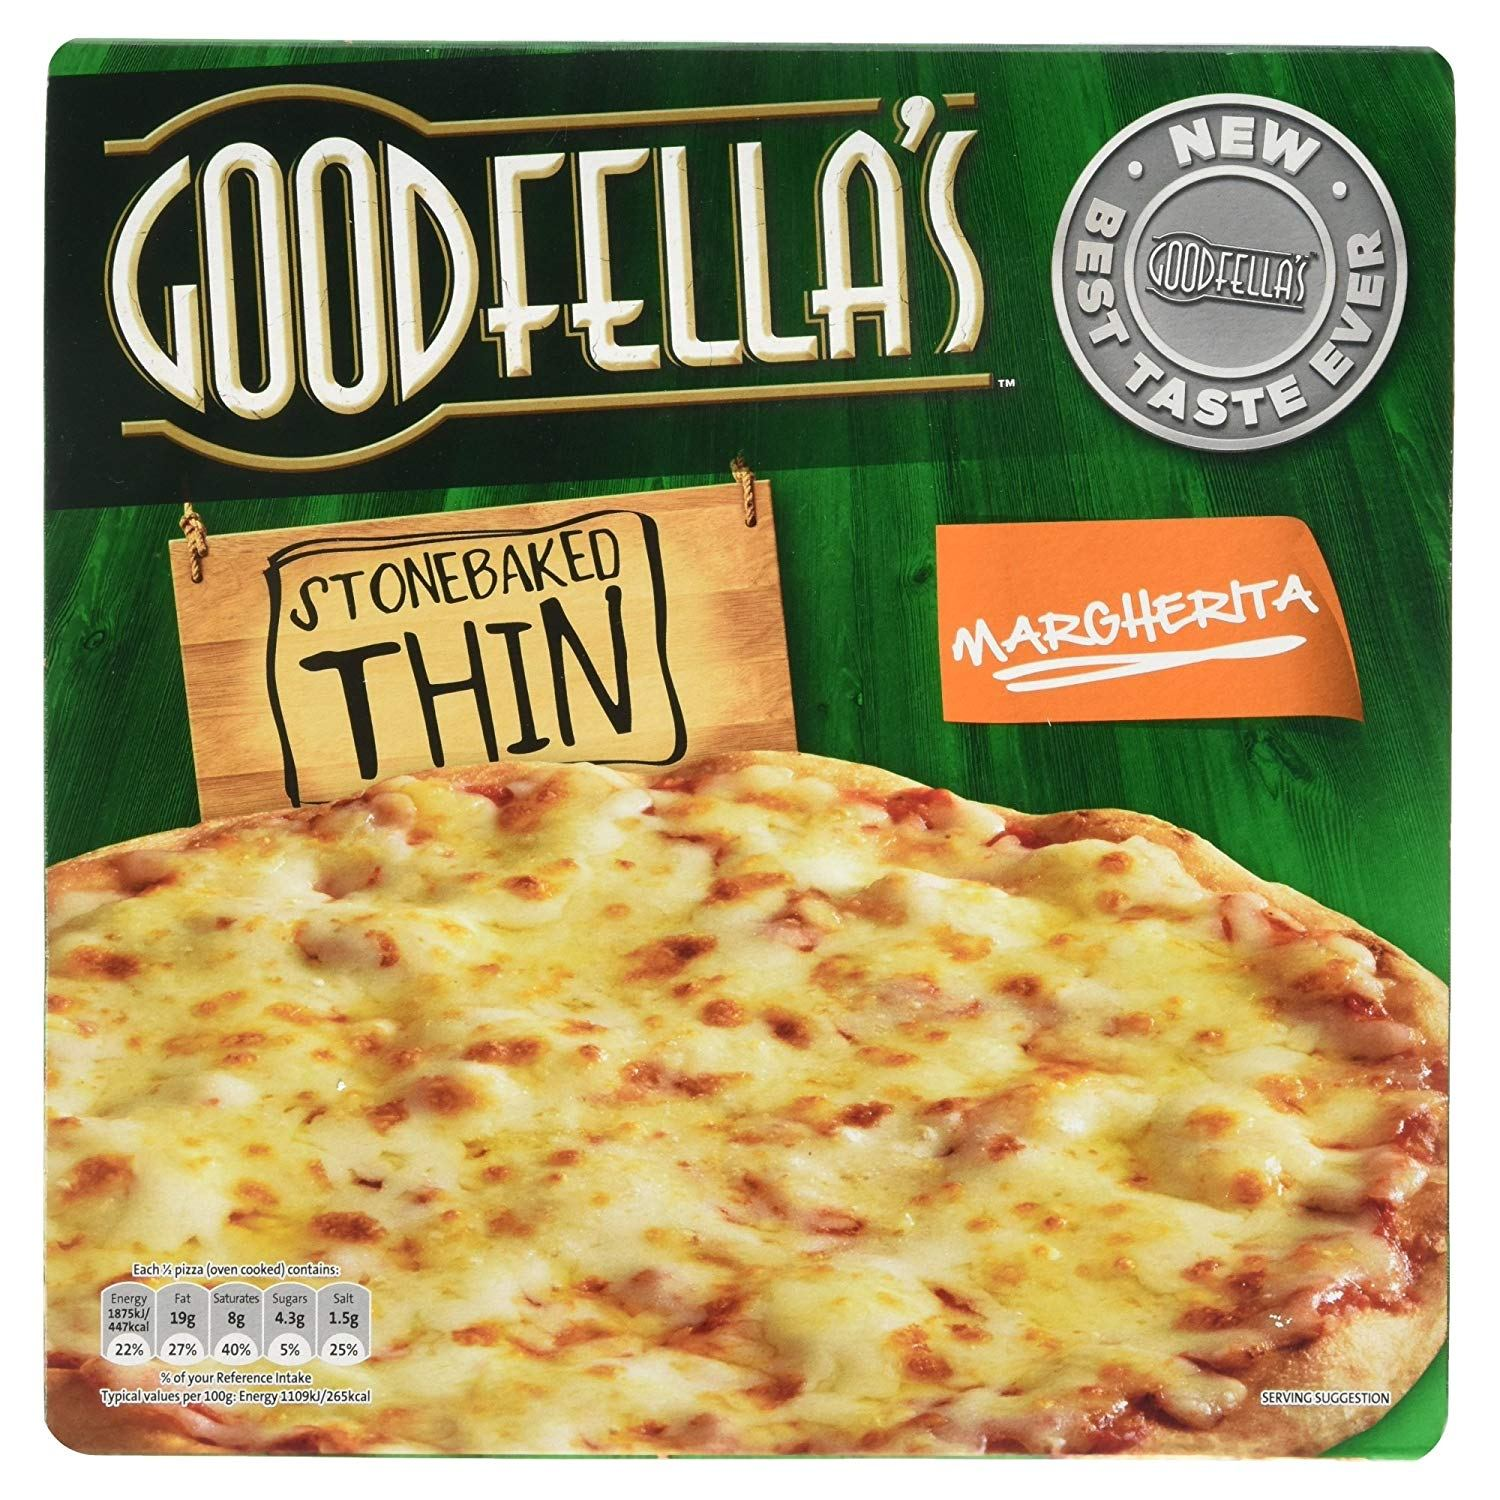 The Goodfellas margherita pizza is £2.25 at Tesco